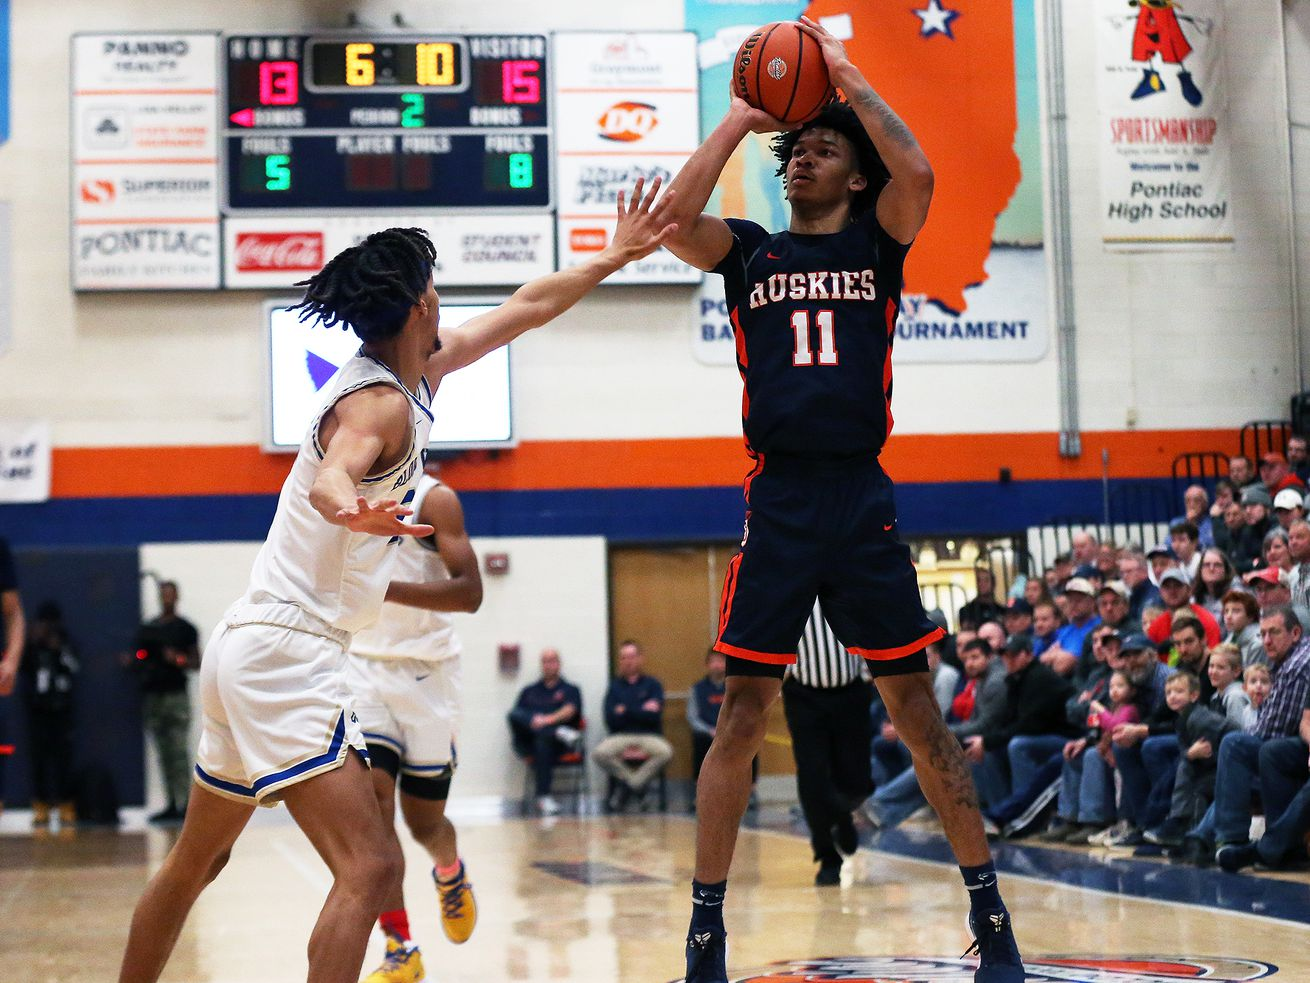 Isaiah Barnes (11), playing for Oak Park last season, shoots a three against Bloom. He is expected to sign with Michigan later this week.